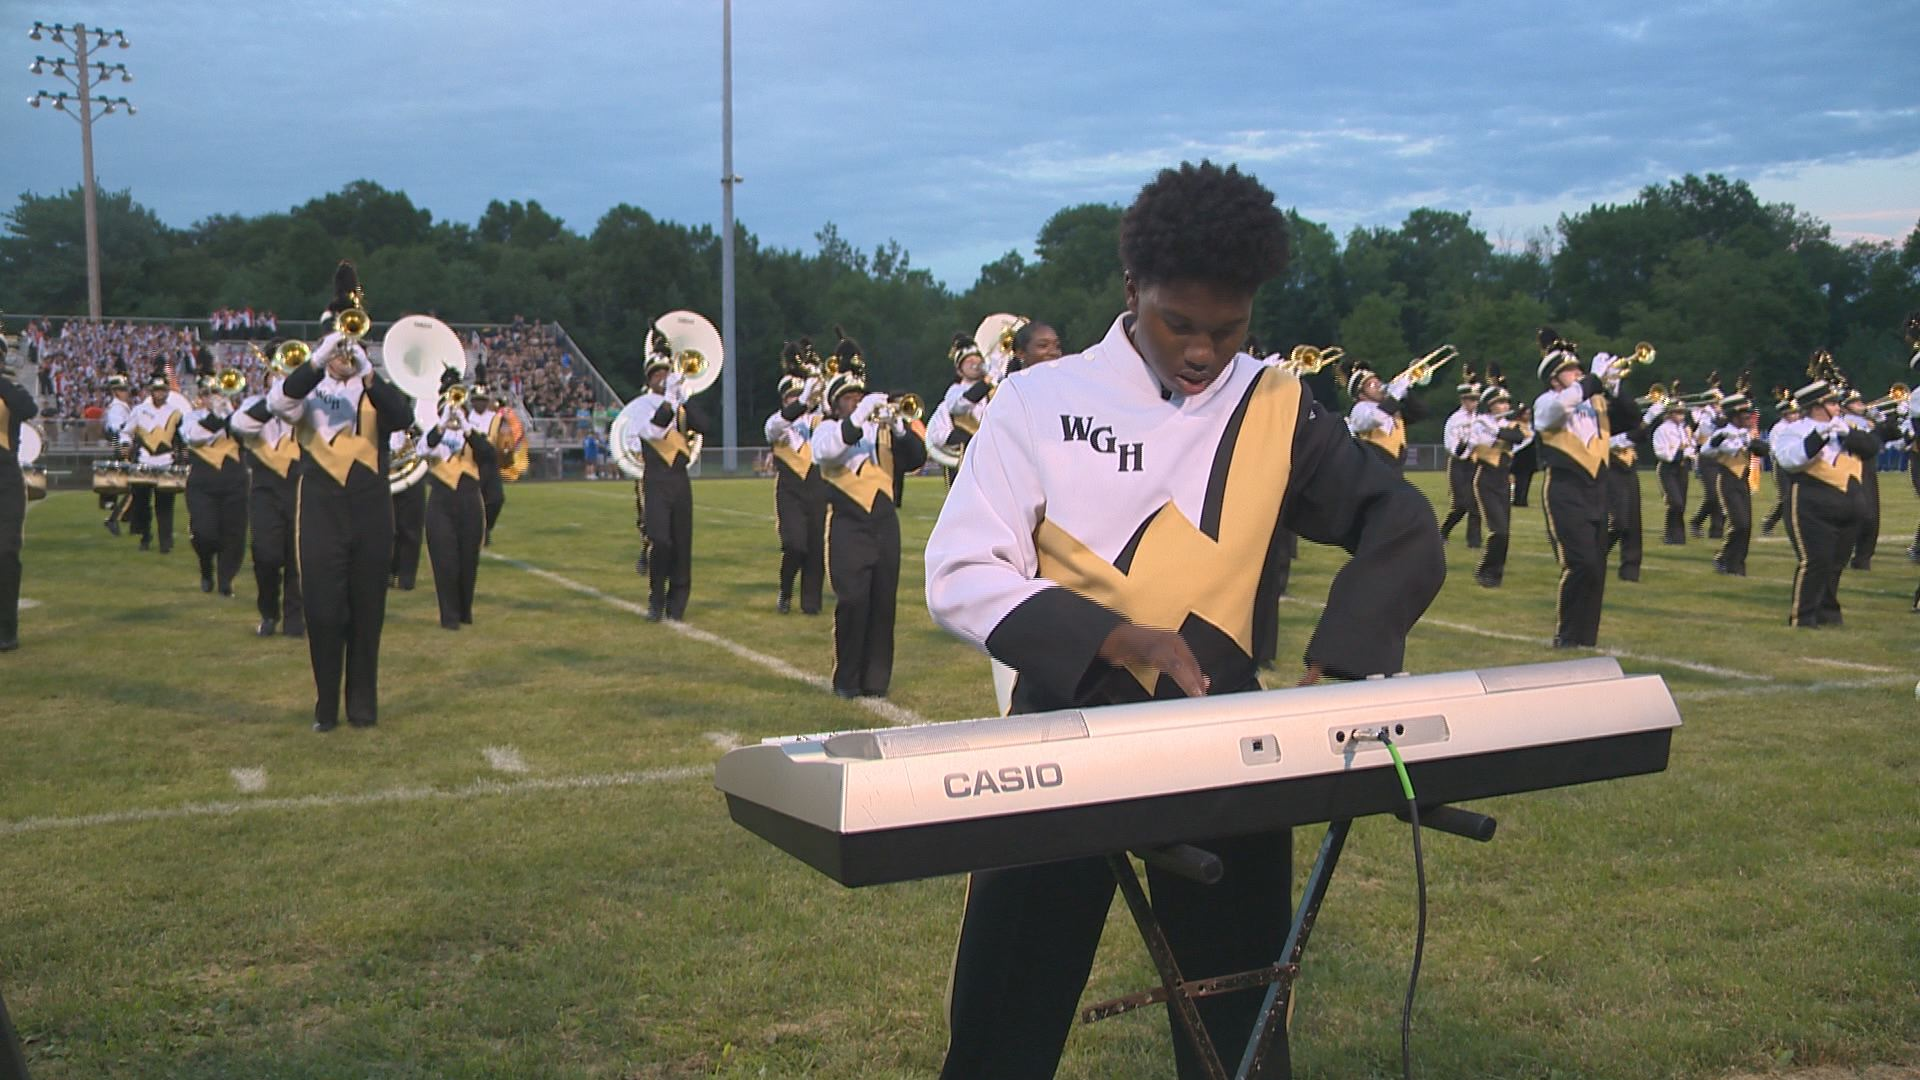 Inspiring Teen Musician With Prosthetic Legs & Four Fingers Shines In High School Band